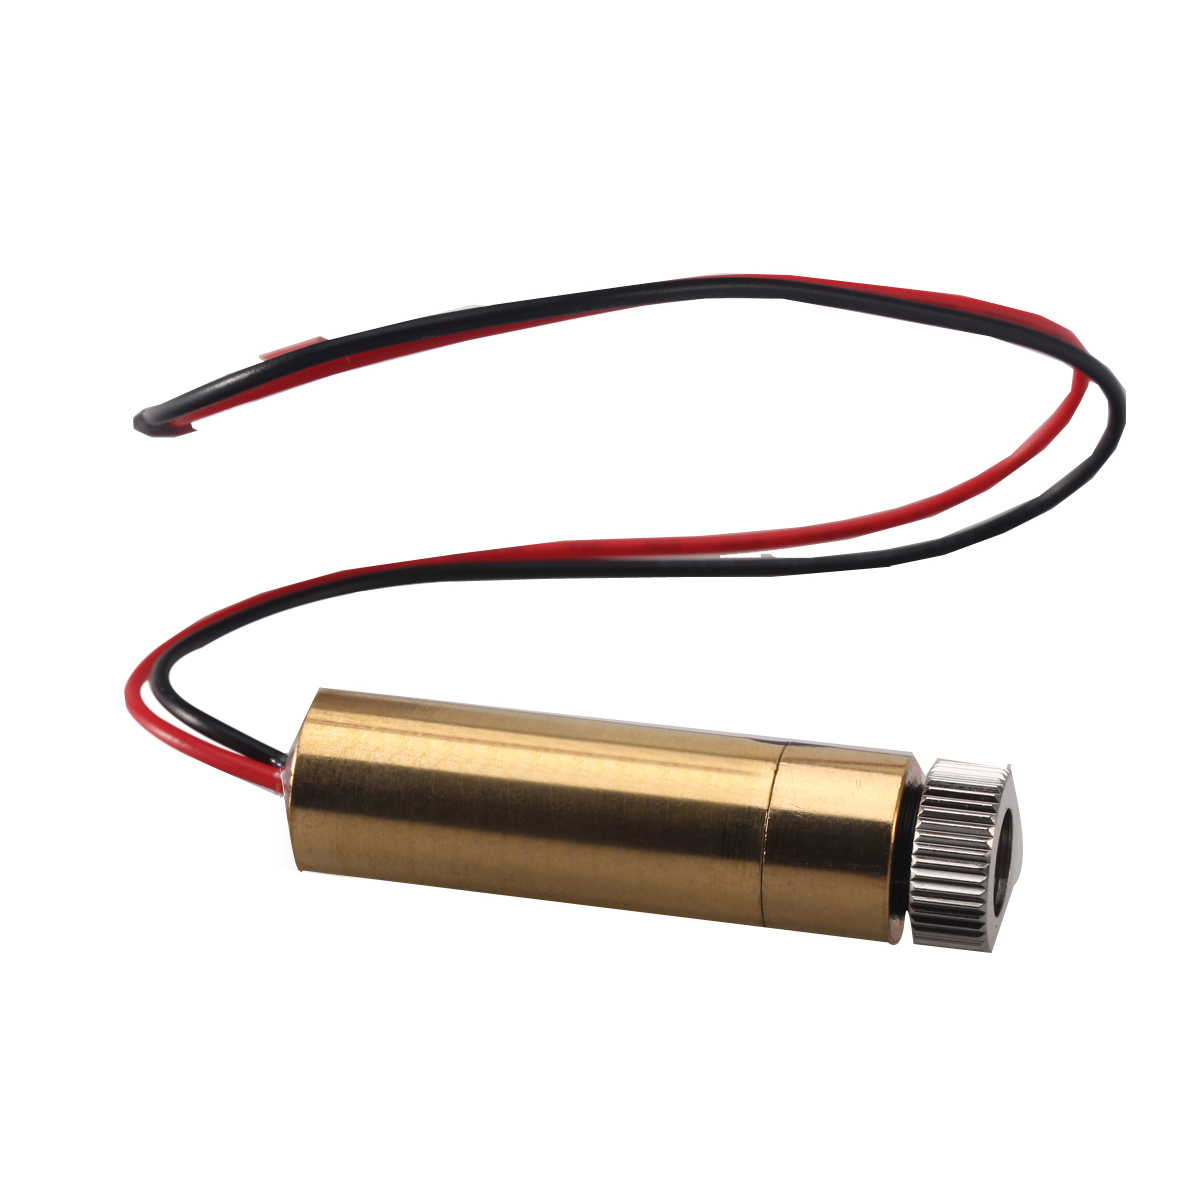 1500mW 405nm Violet Light Laser Head for DIY Carving Engraving Machine Engraver Accessory